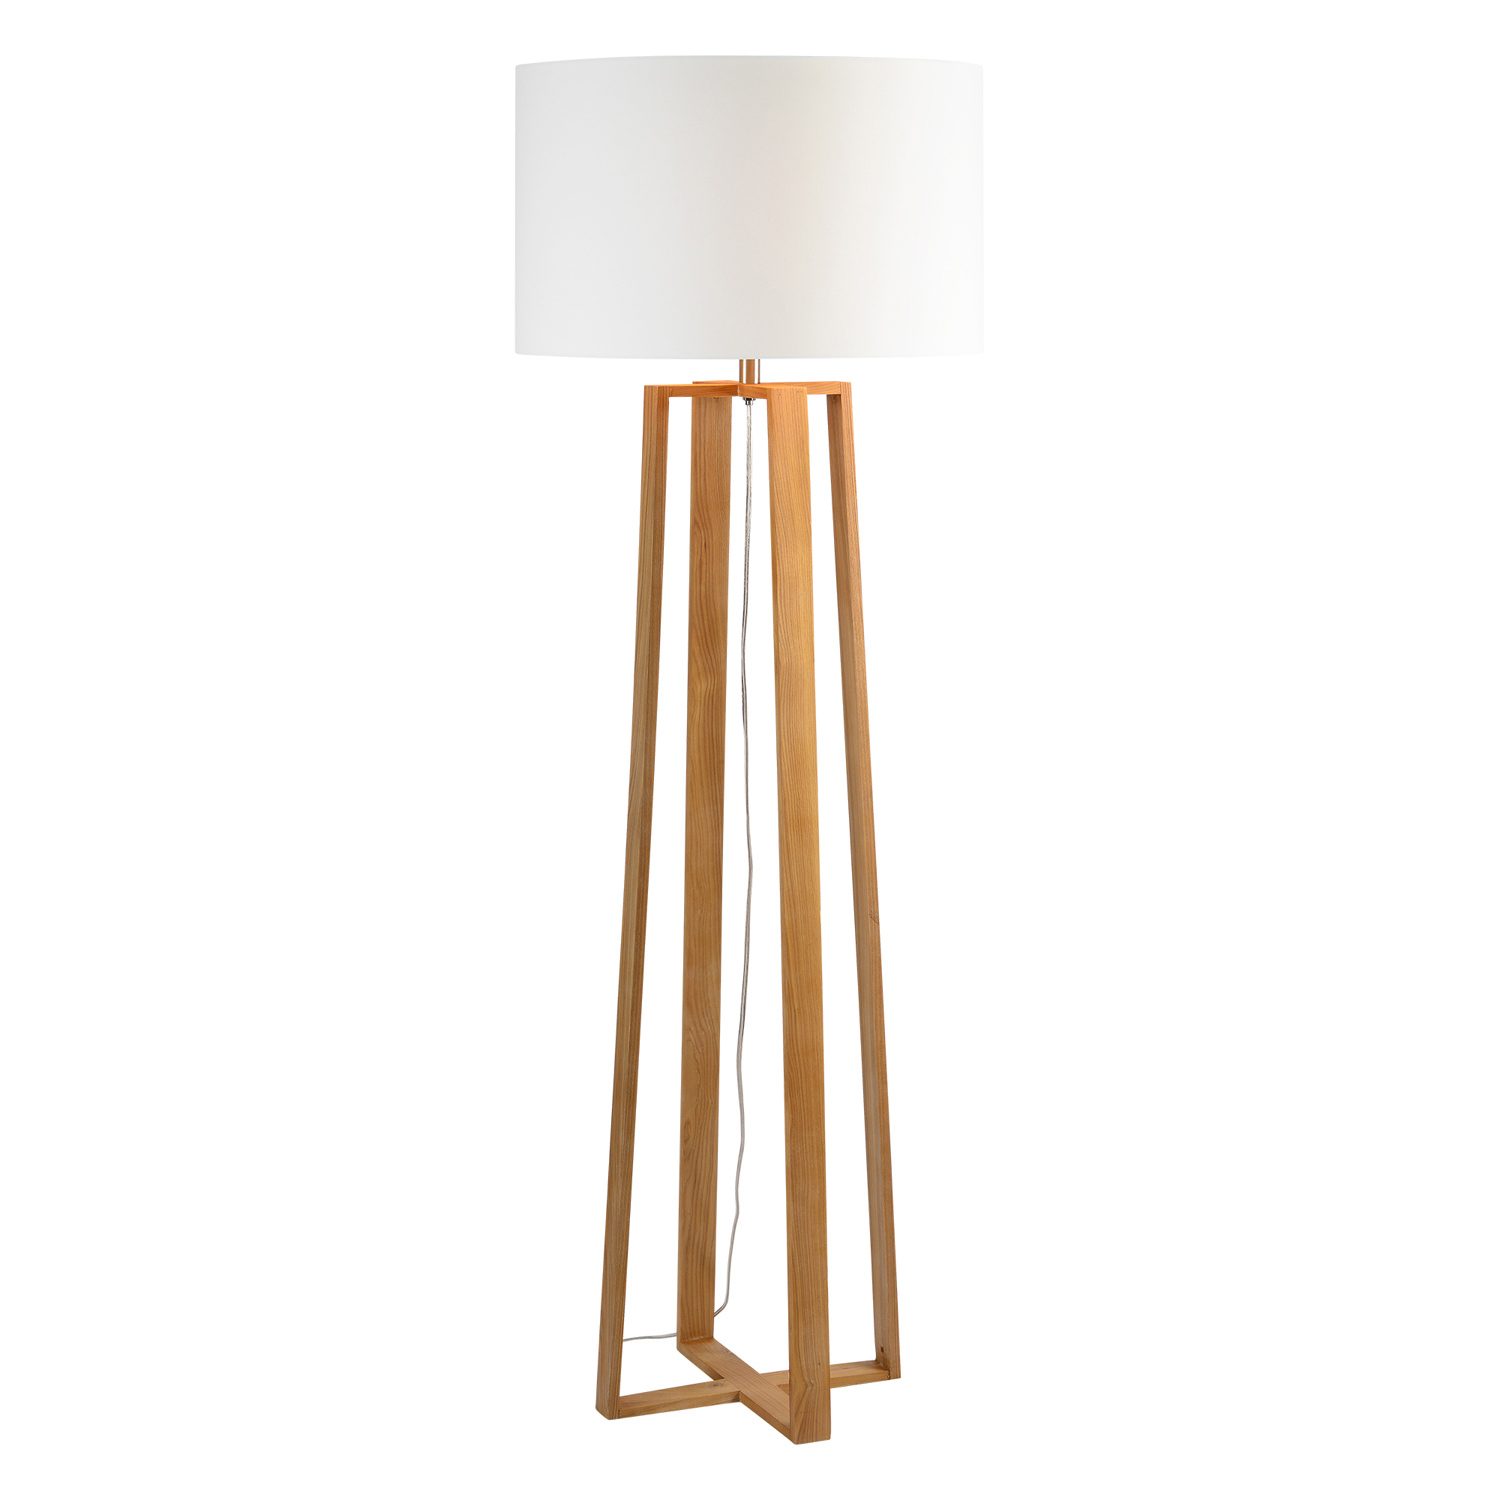 Ren-Wil Cranston Floor Lamp - Natural Wood Color